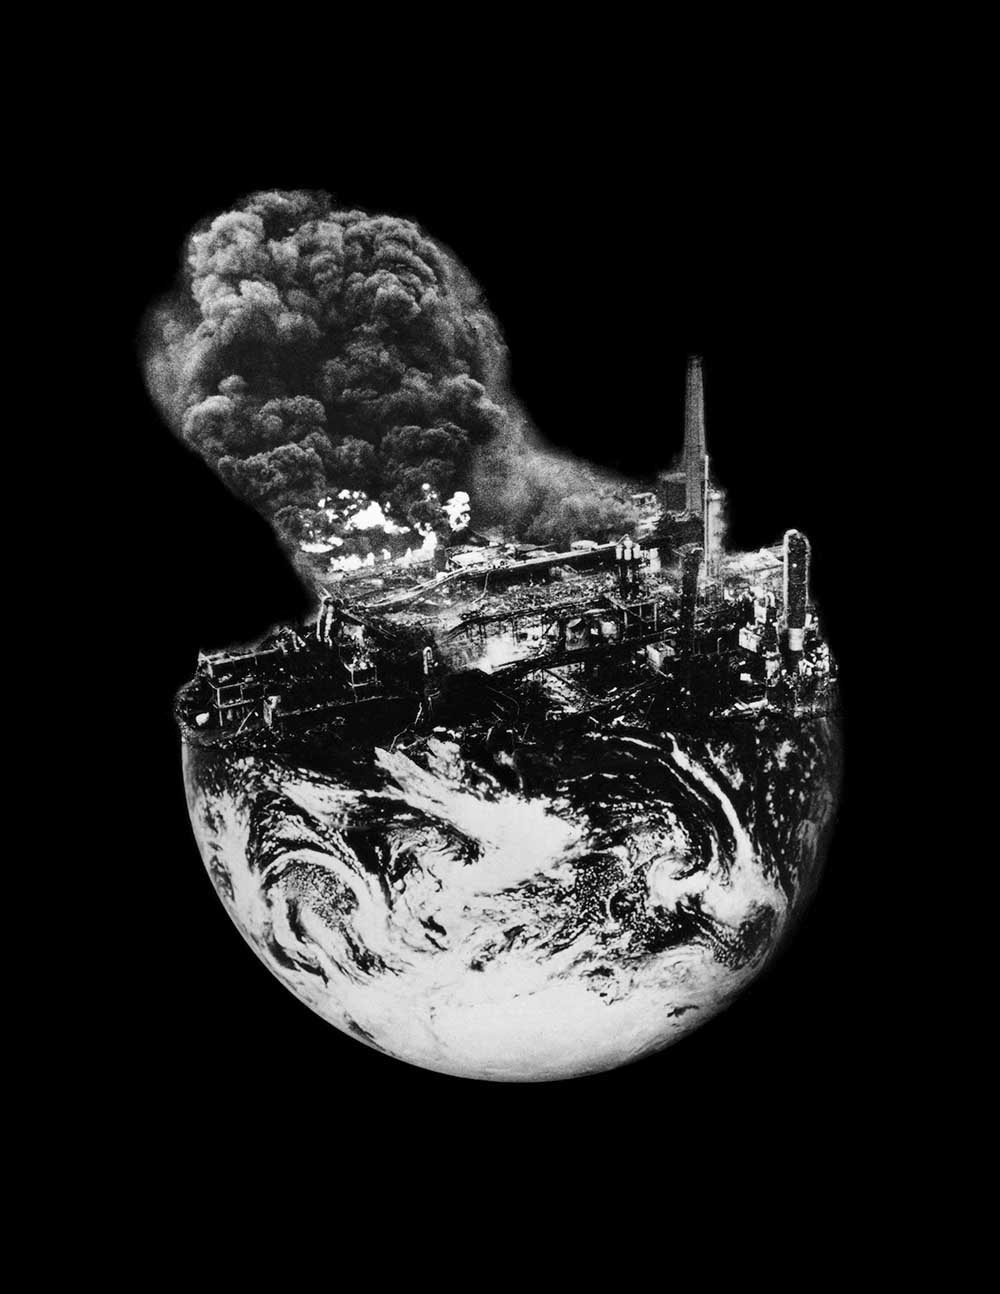 Earth 6 - PhotomontageGelatin silver print on card1988 – 2016First published:The Gaia Peace Atlas,Pan Books, 1988Catalogue: PK/36